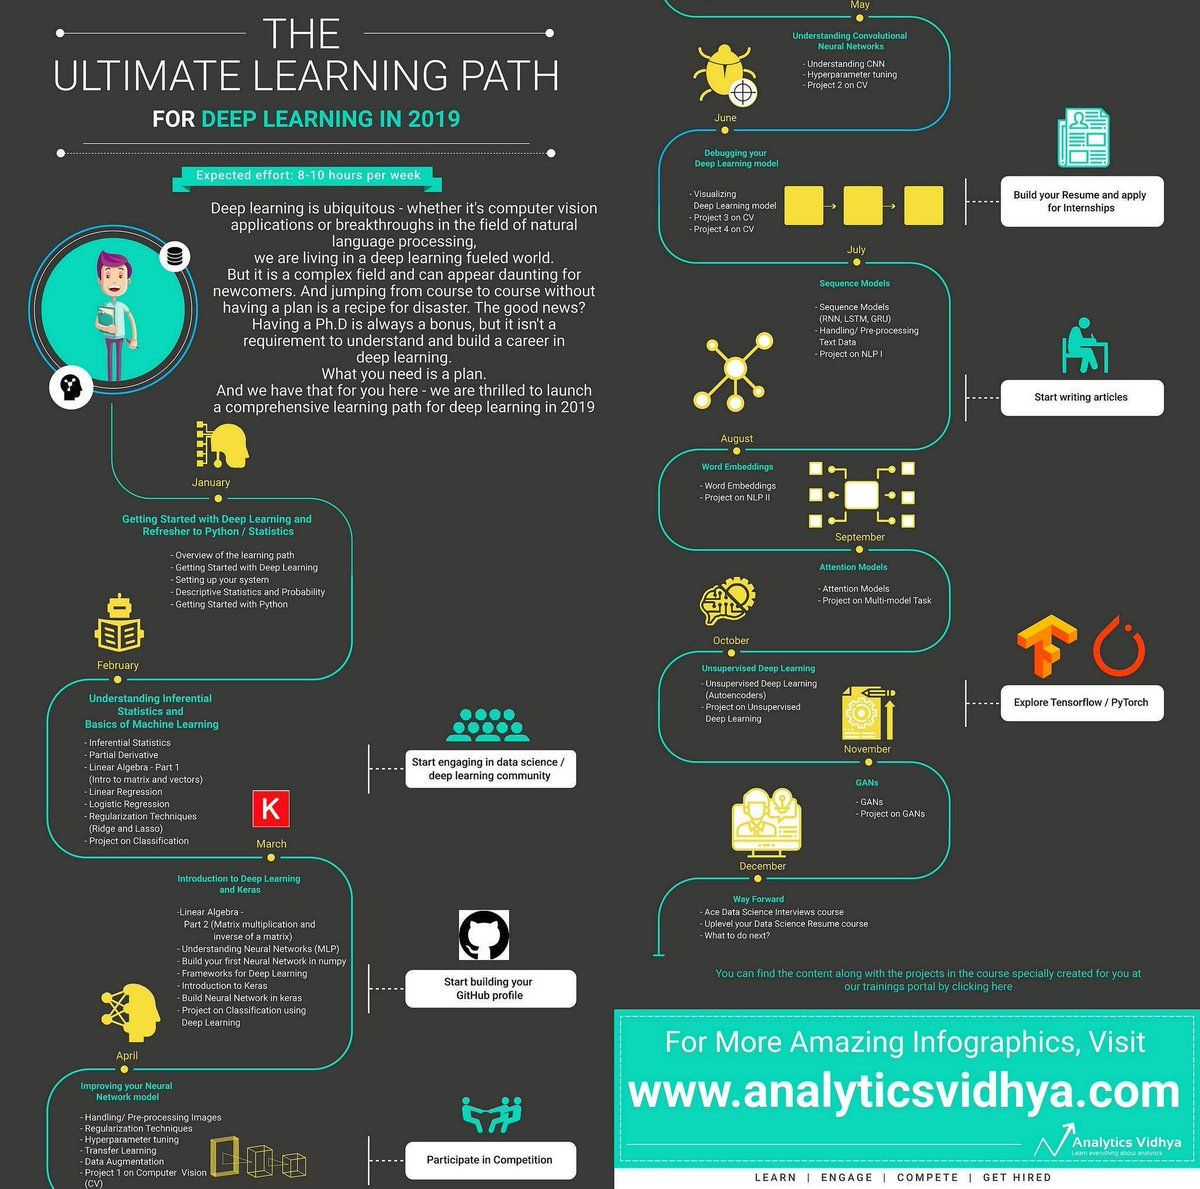 test Twitter Media - A Comprehensive learning path for #DeepLearning in 2019.  (via @ipfconline1 @pushpeshjha by @AnalyticsVidhya)   https://t.co/FCVOmp0CG9 https://t.co/STKM5P0kax